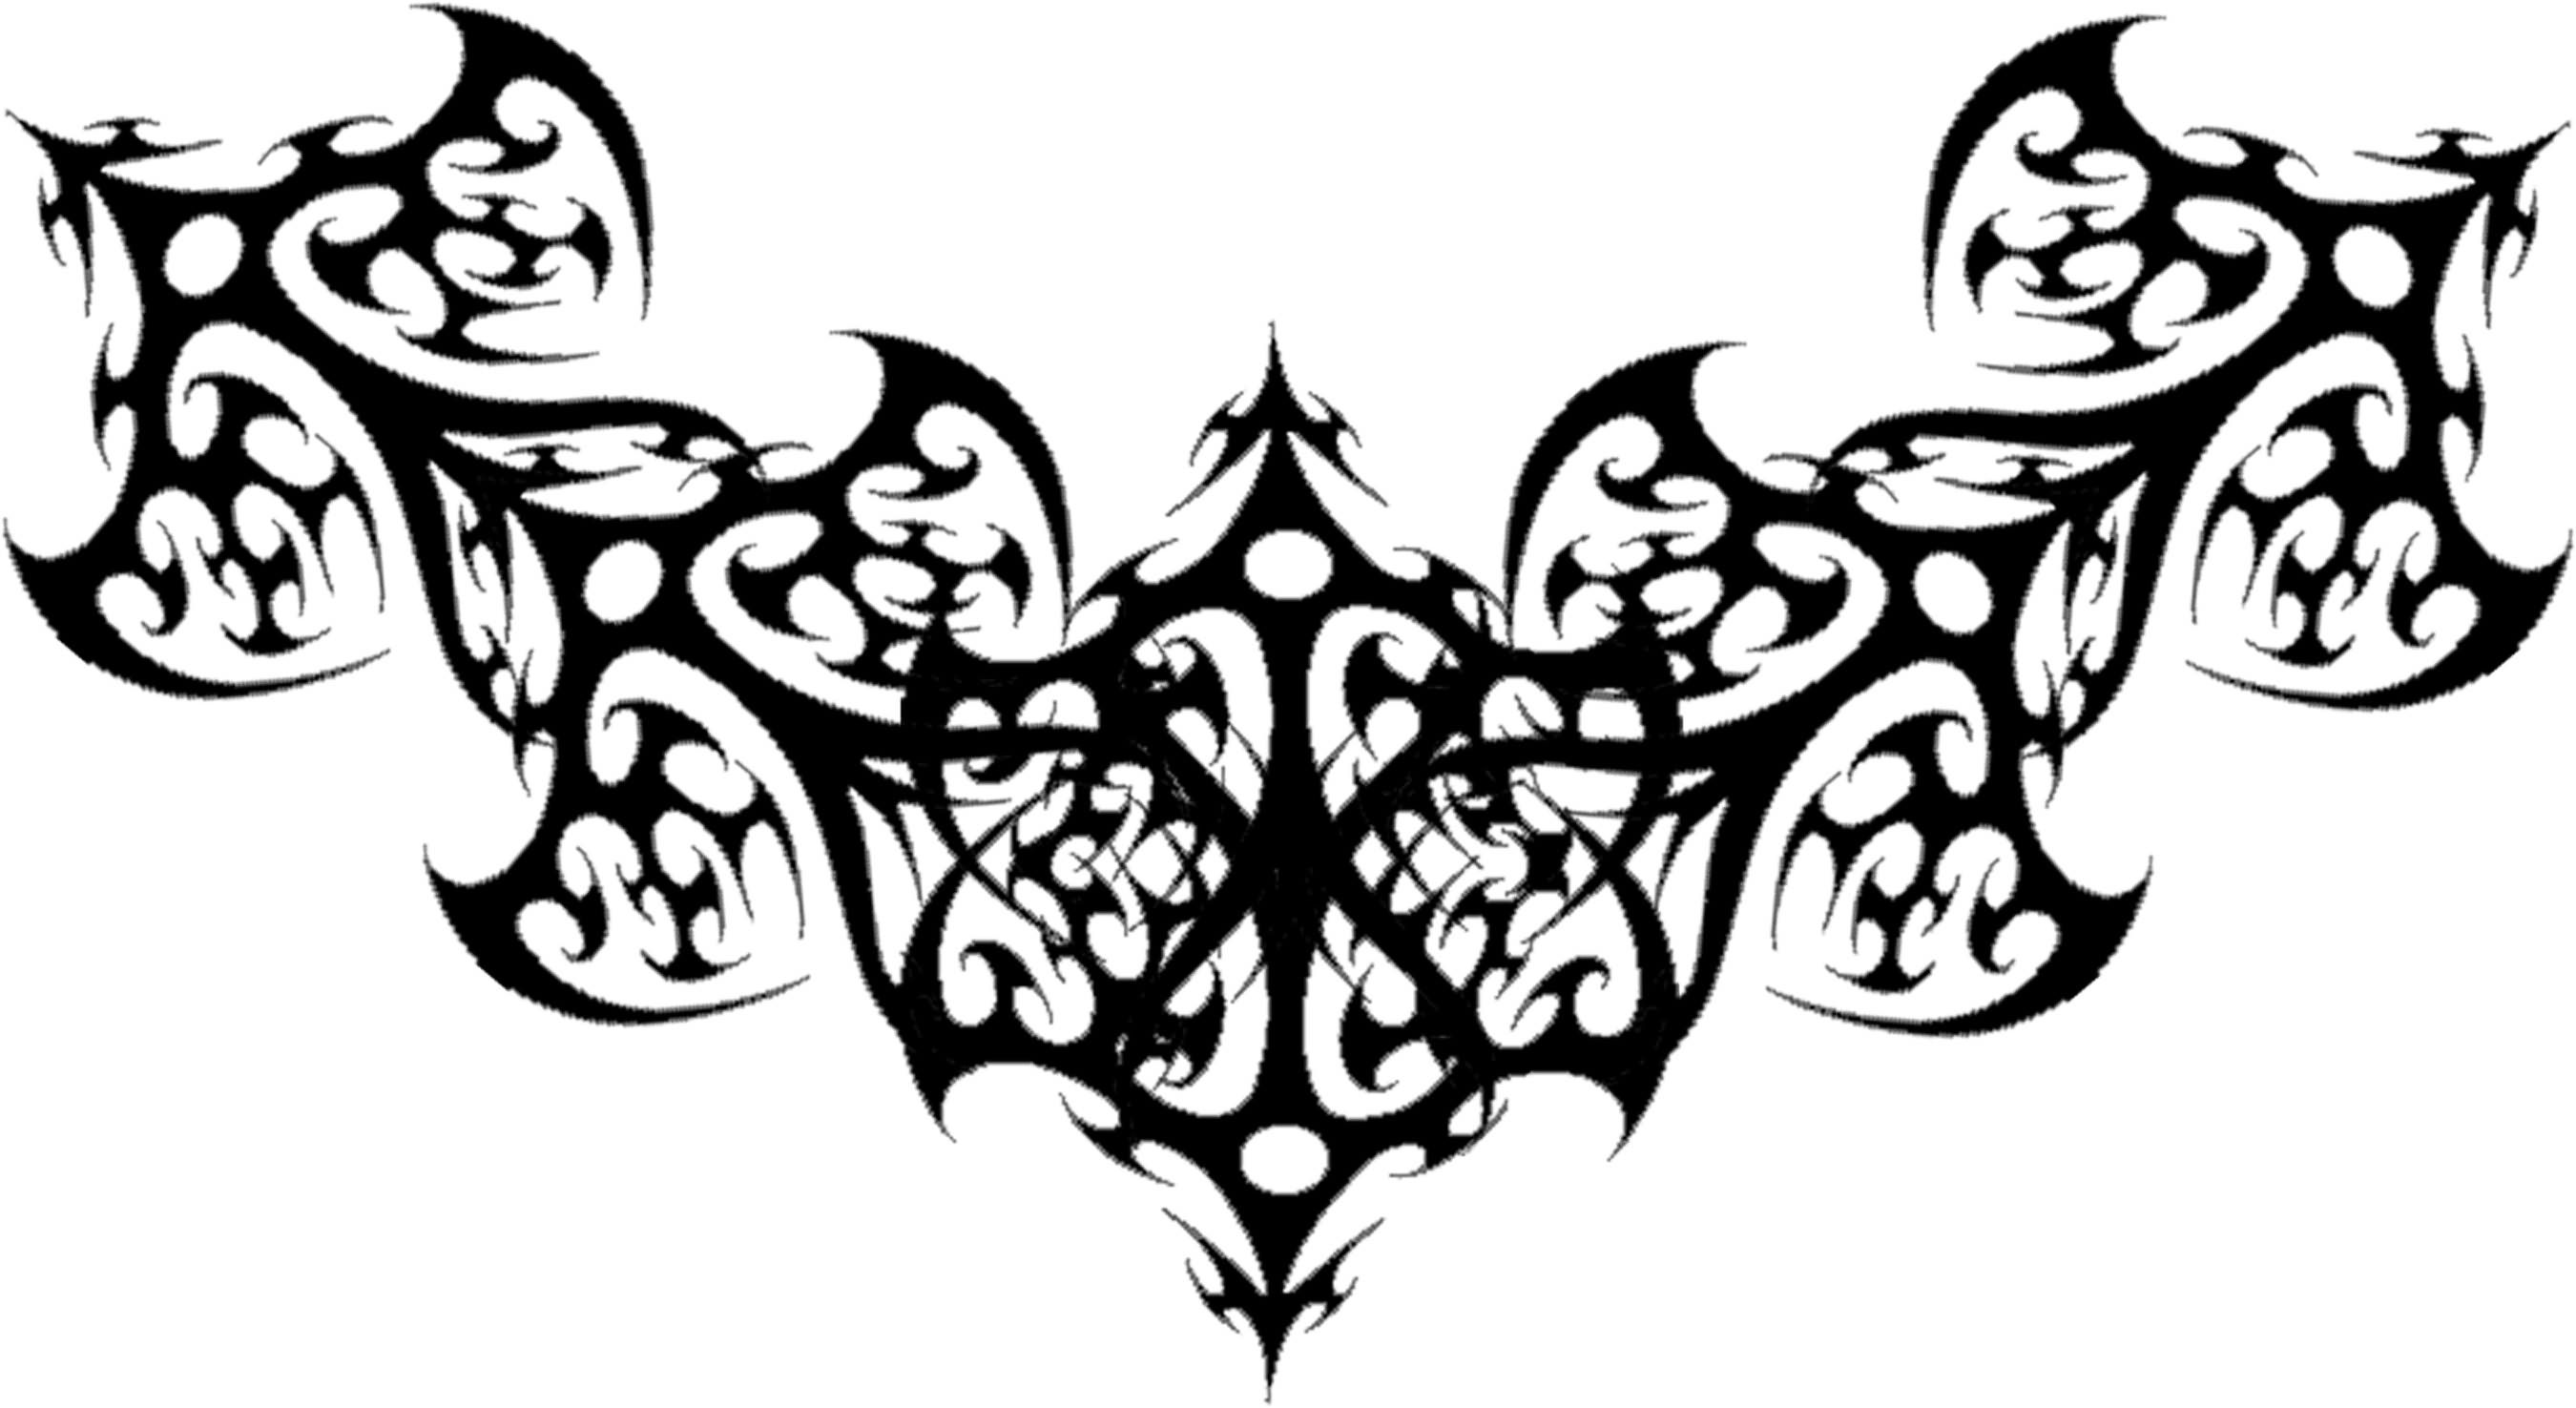 Tattoo Designs Ideas is tattoo designs and ideas blog. Description from tattoodesign.com-designs.net. I searched for this on bing.com/images